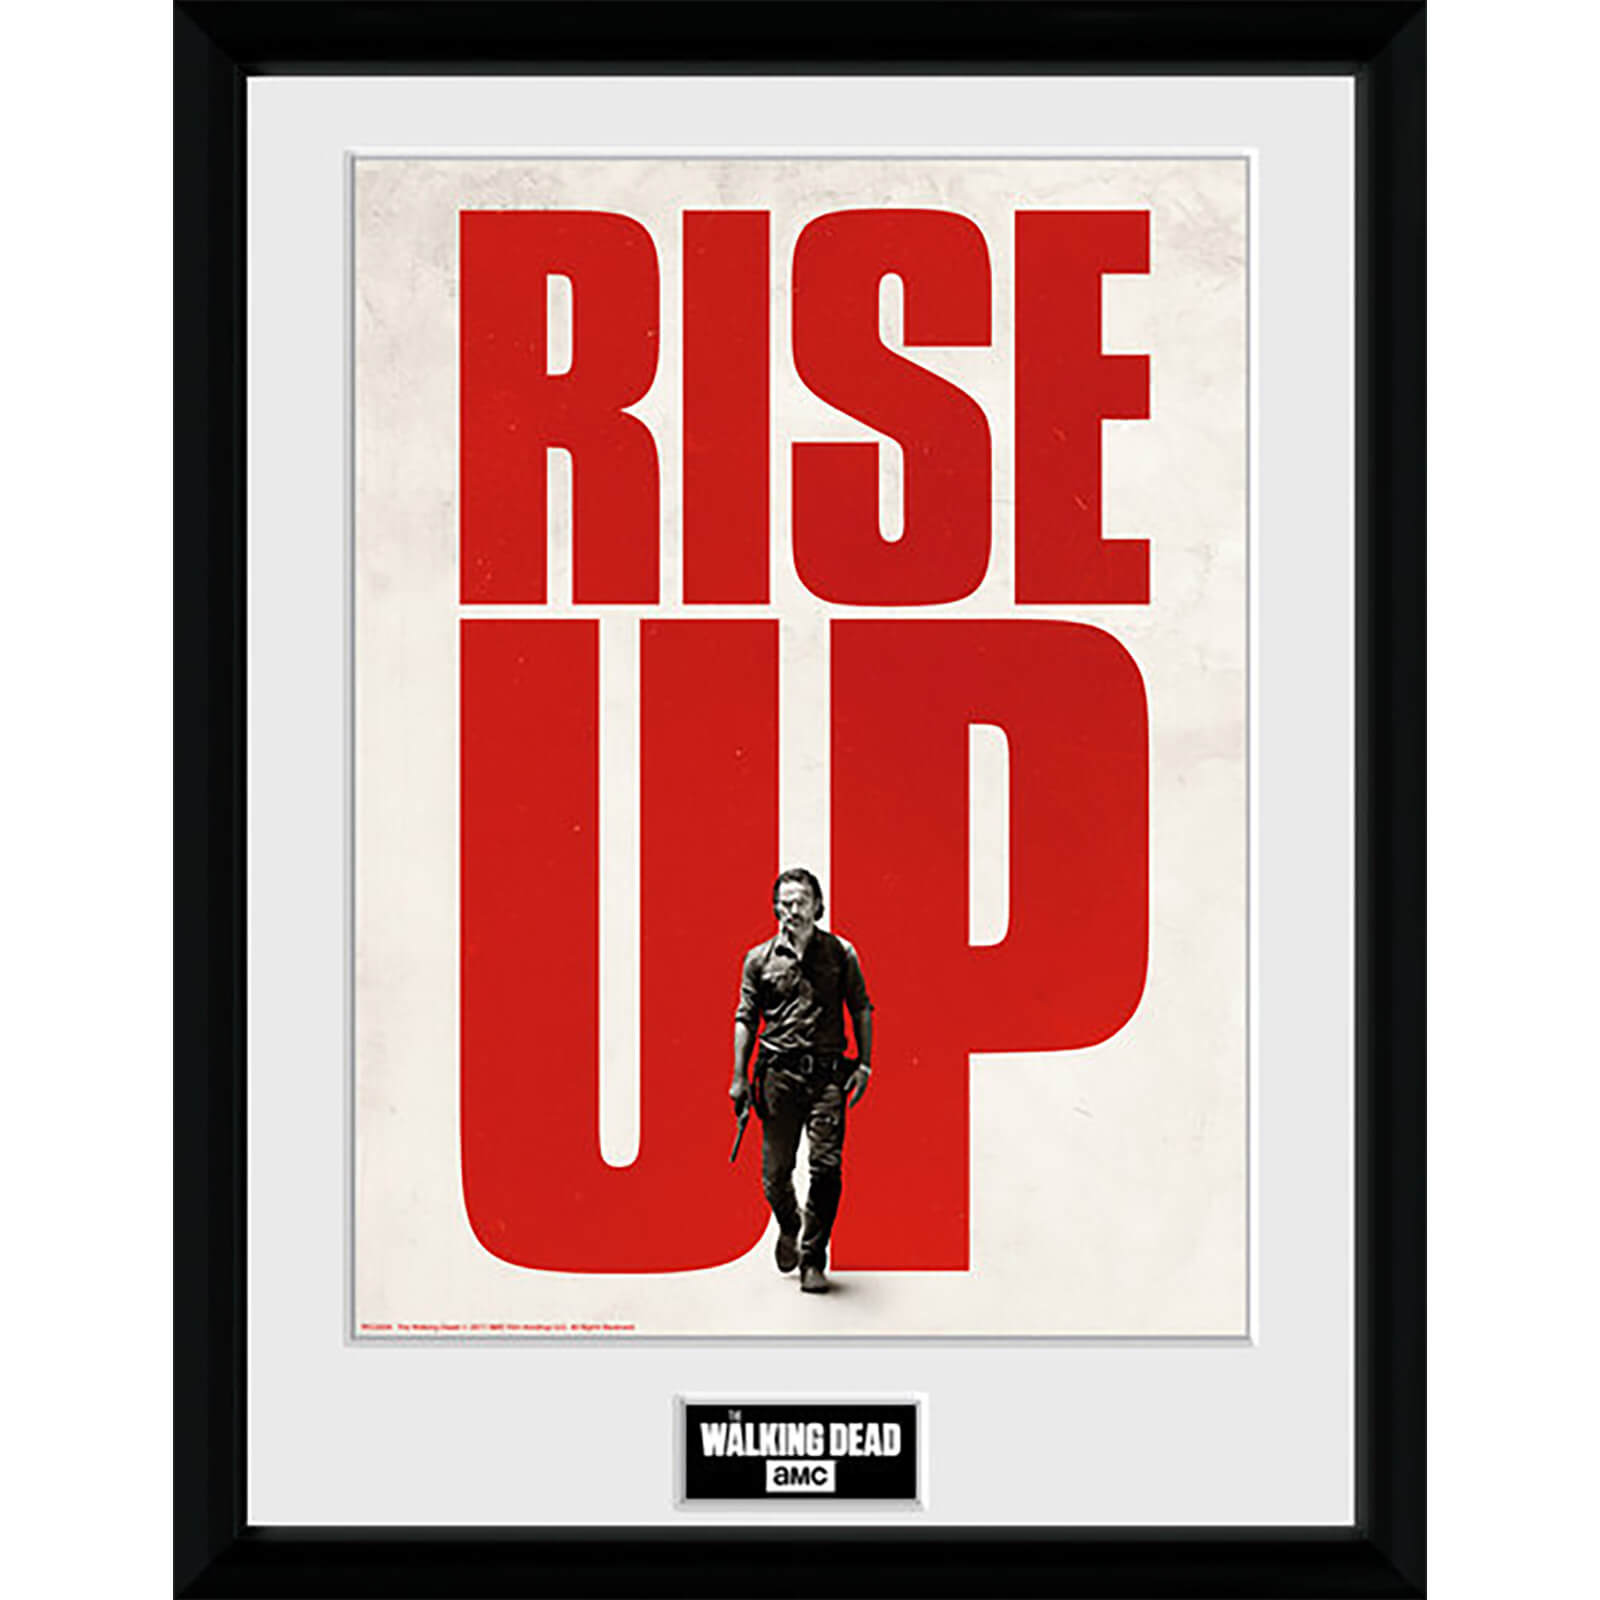 The Walking Dead Rise Up - 16 x 12 Inches Framed Photograph